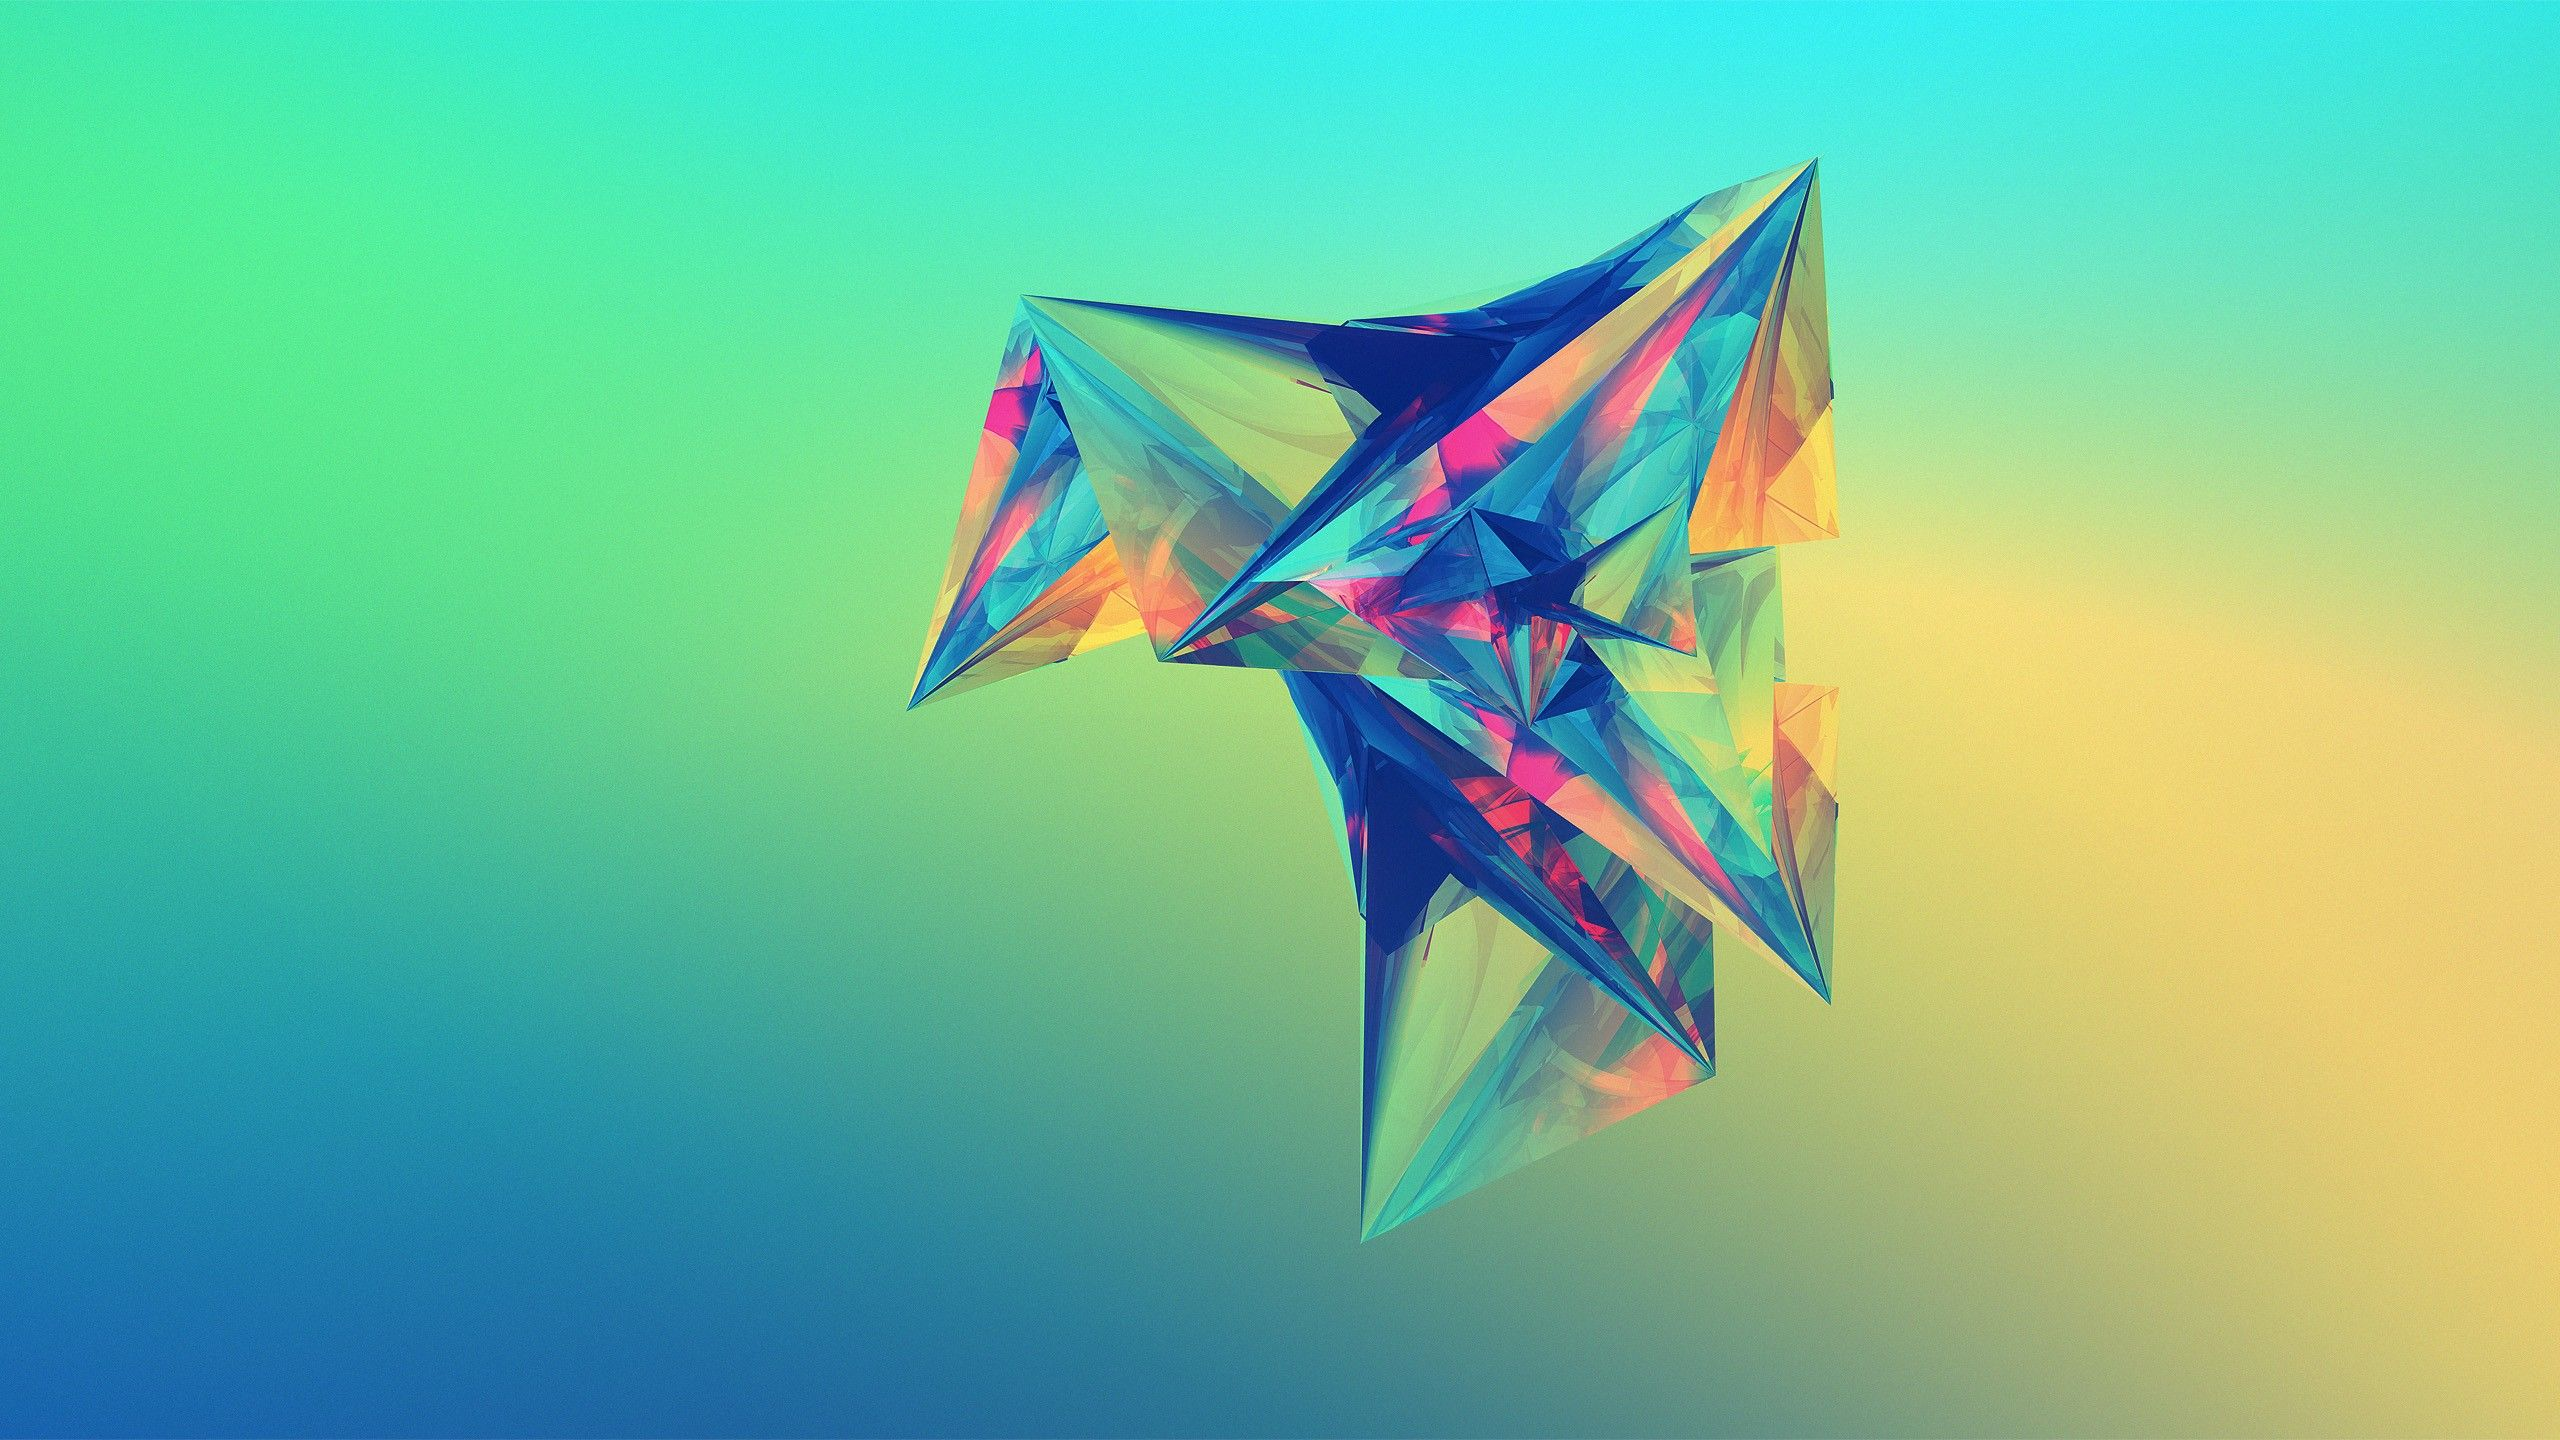 2560x1440 4K Abstract Wallpapers (7 Wallpapers) – Adorable Wallpapers